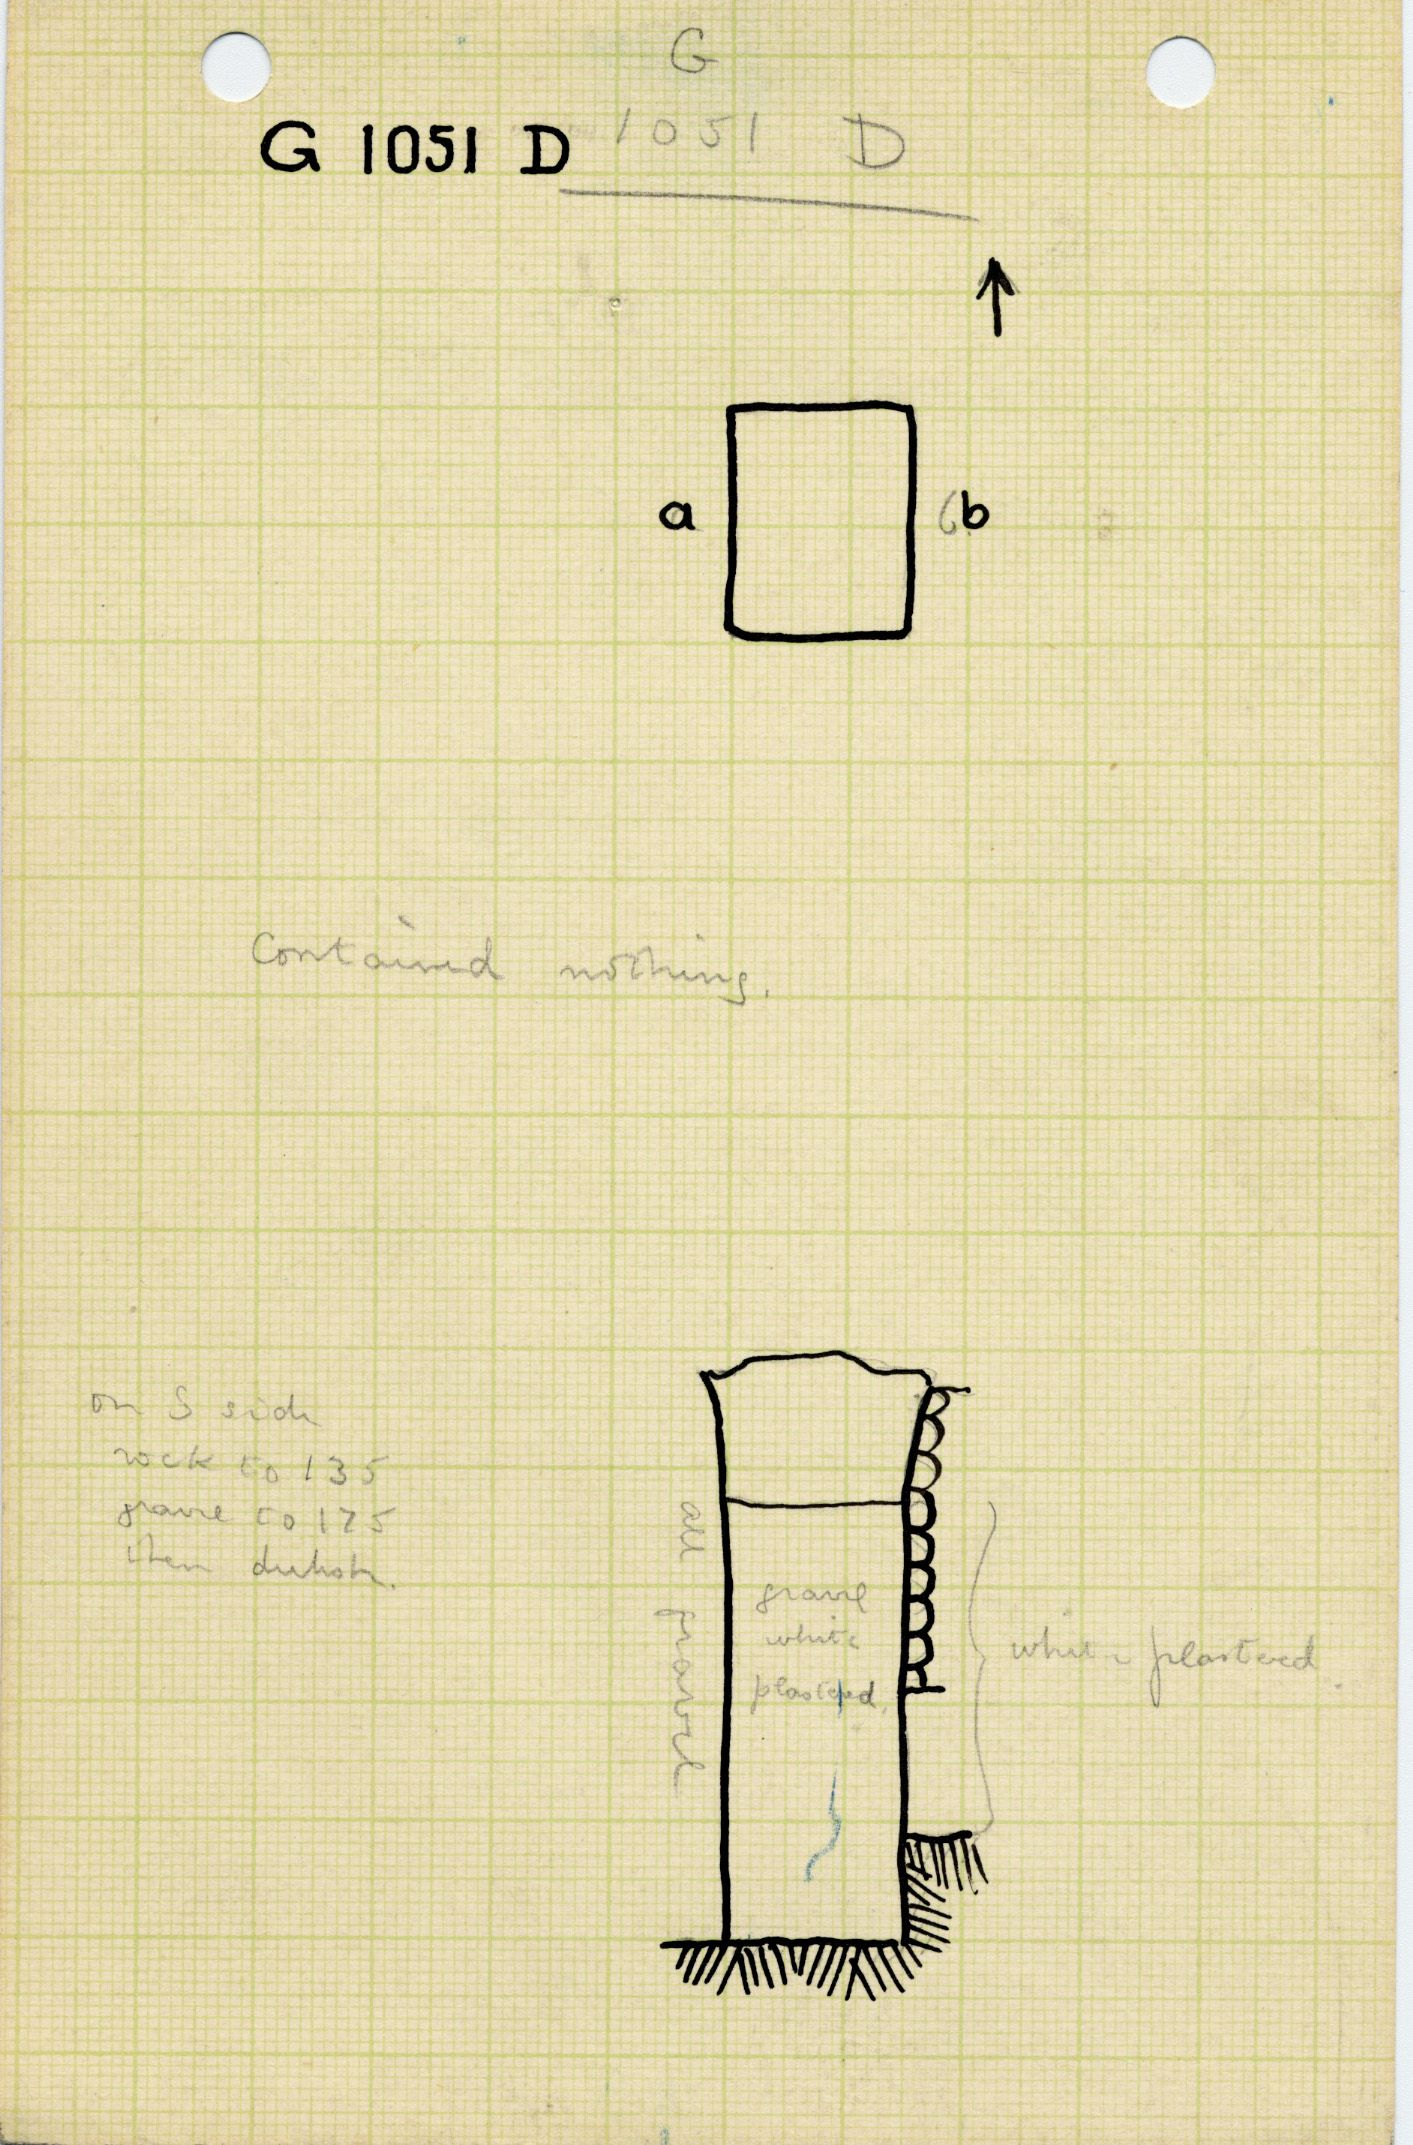 Maps and plans: G 1051, Shaft D